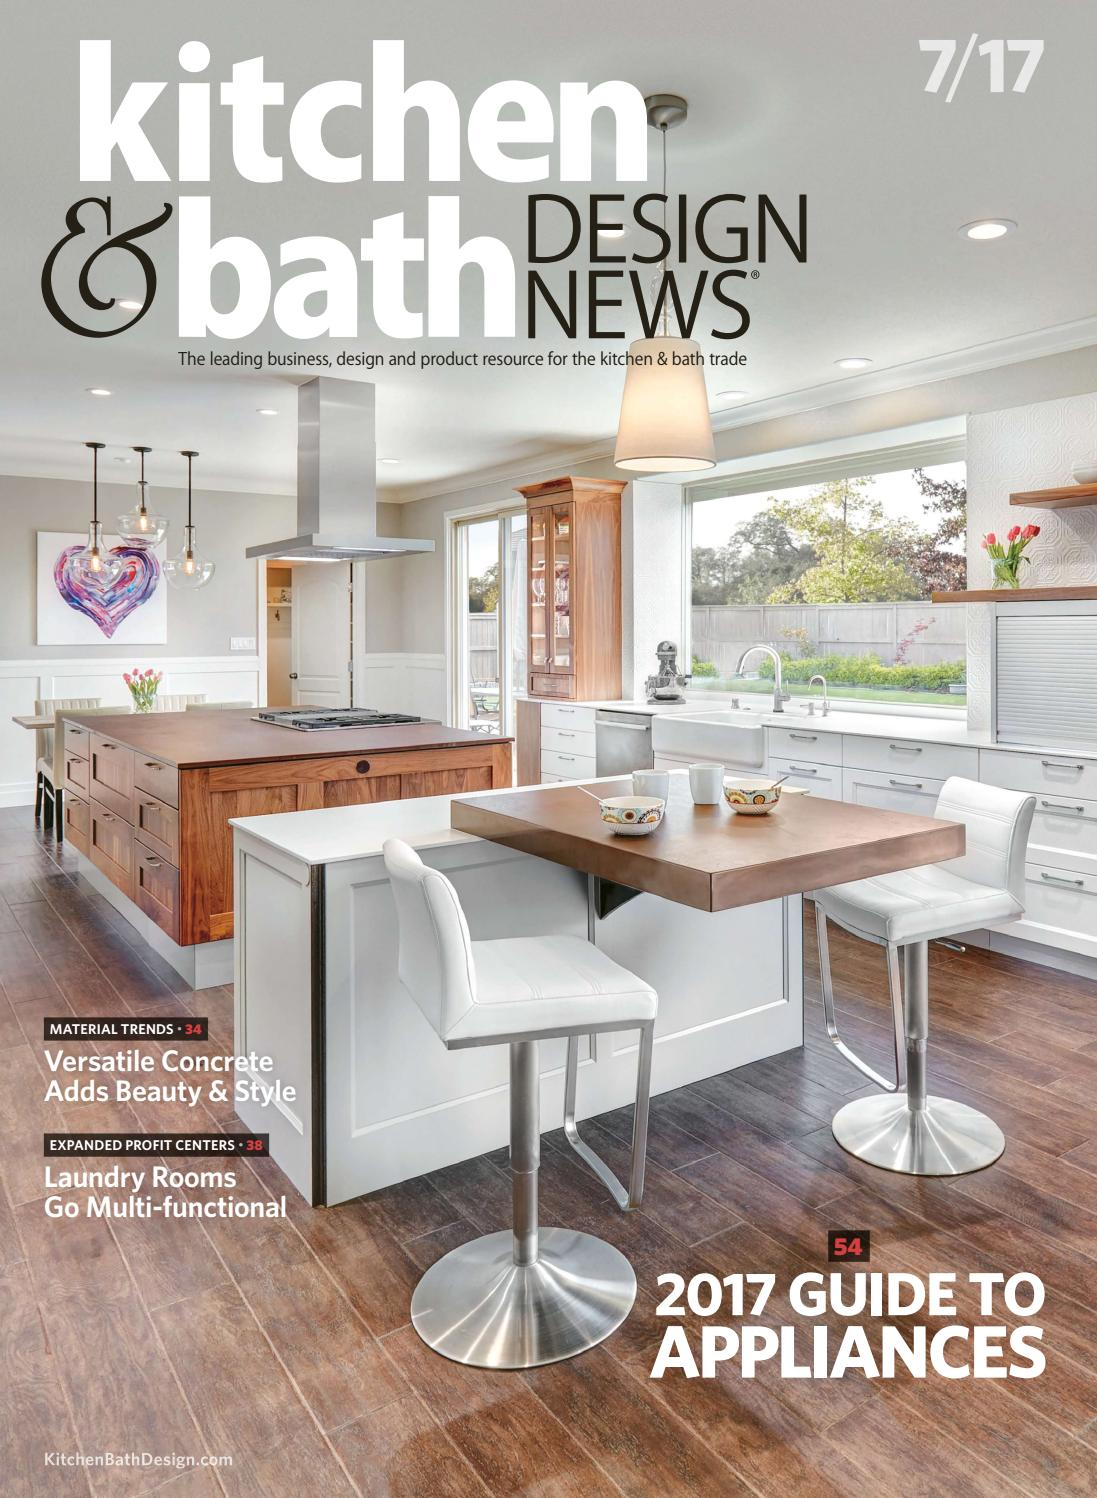 Kitchen and bath design by Nội Thất Hạnh Phúc - issuu